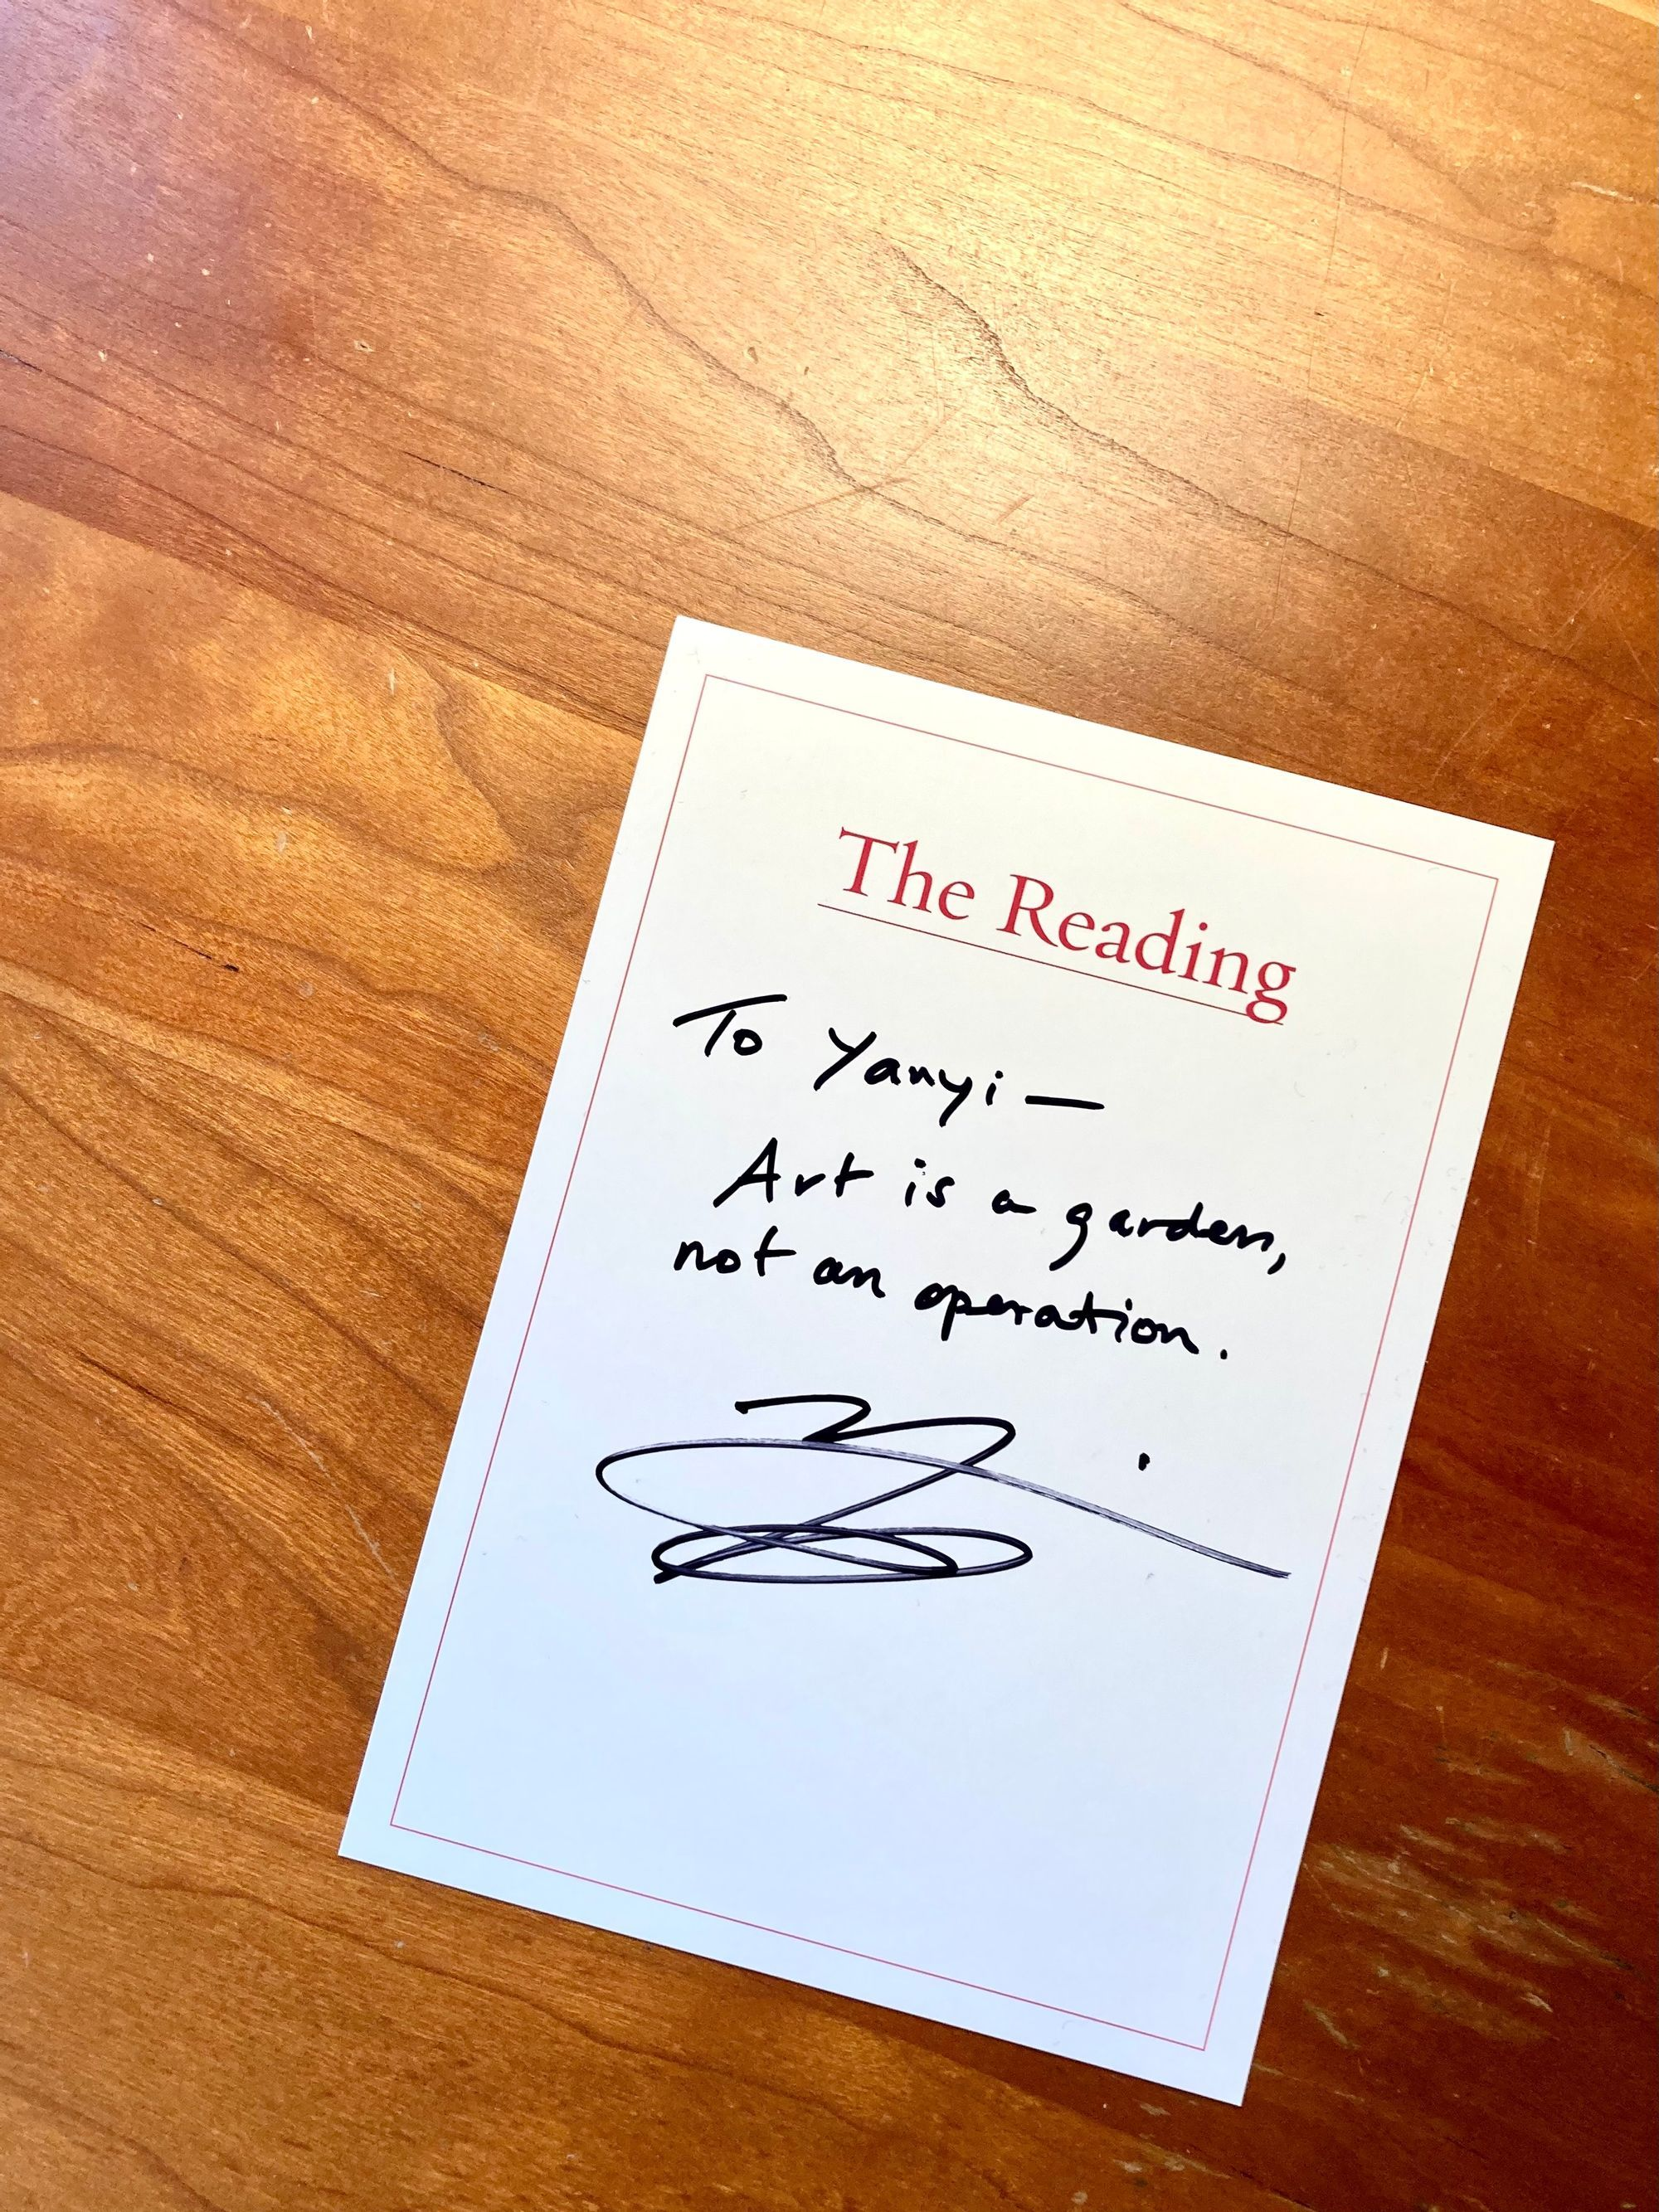 """Image: A handwritten card from The Reading, signed by Yanyi, with the note: """"To Yanyi— Art is a garden, not an operation,"""" sits on a blond wood desk."""